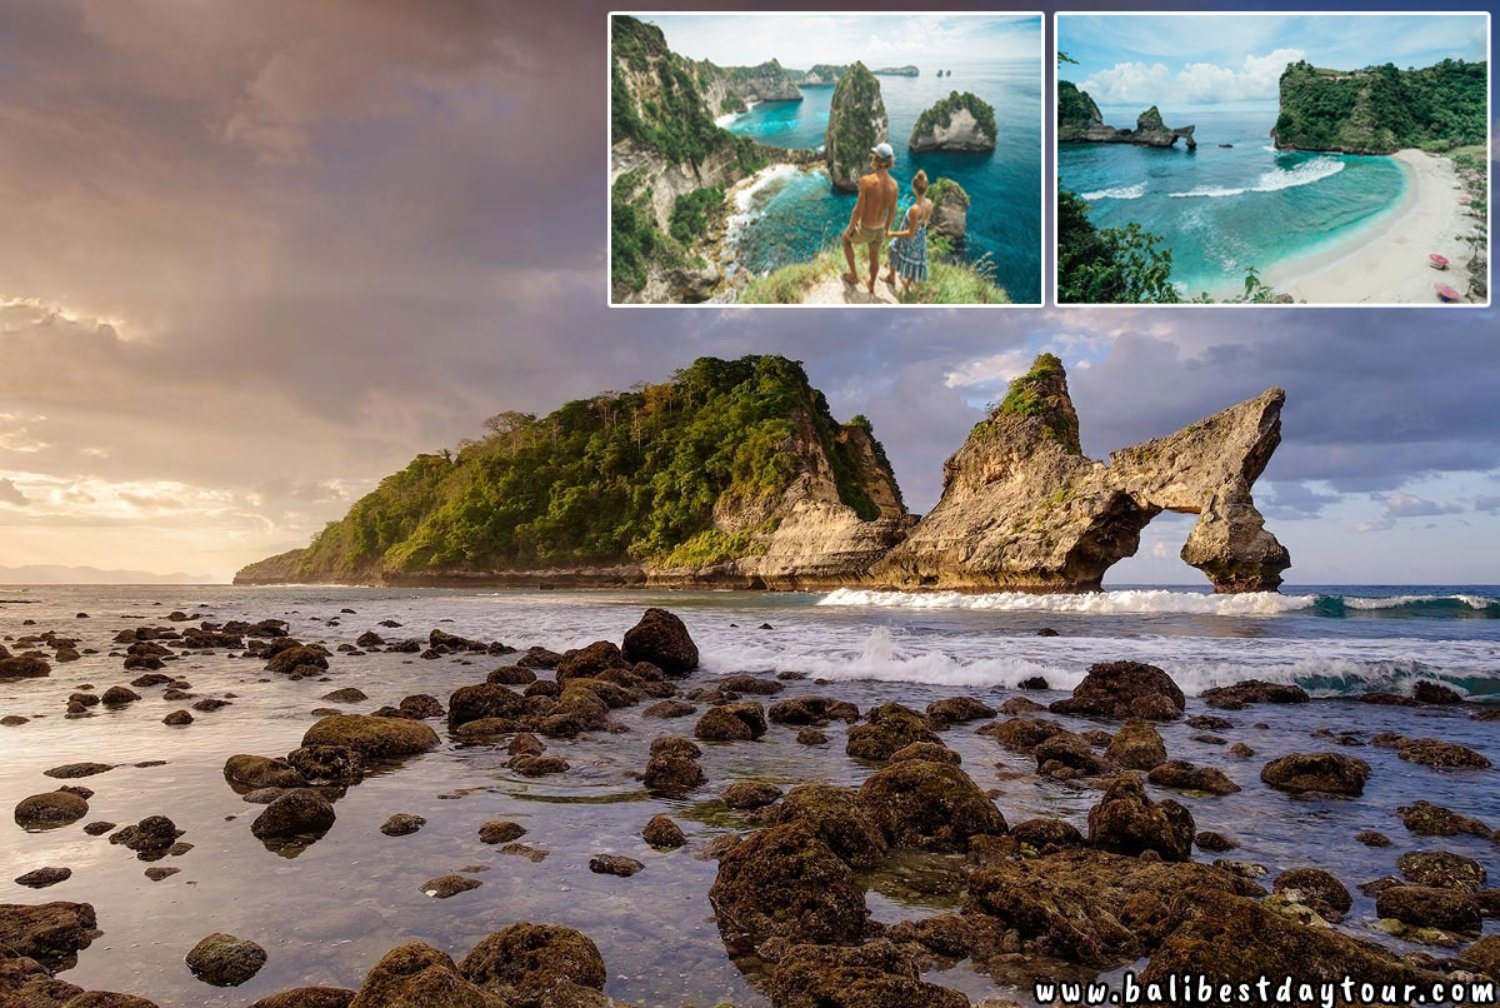 Nusa Penida Island Tour Package Includes Private Transport Service